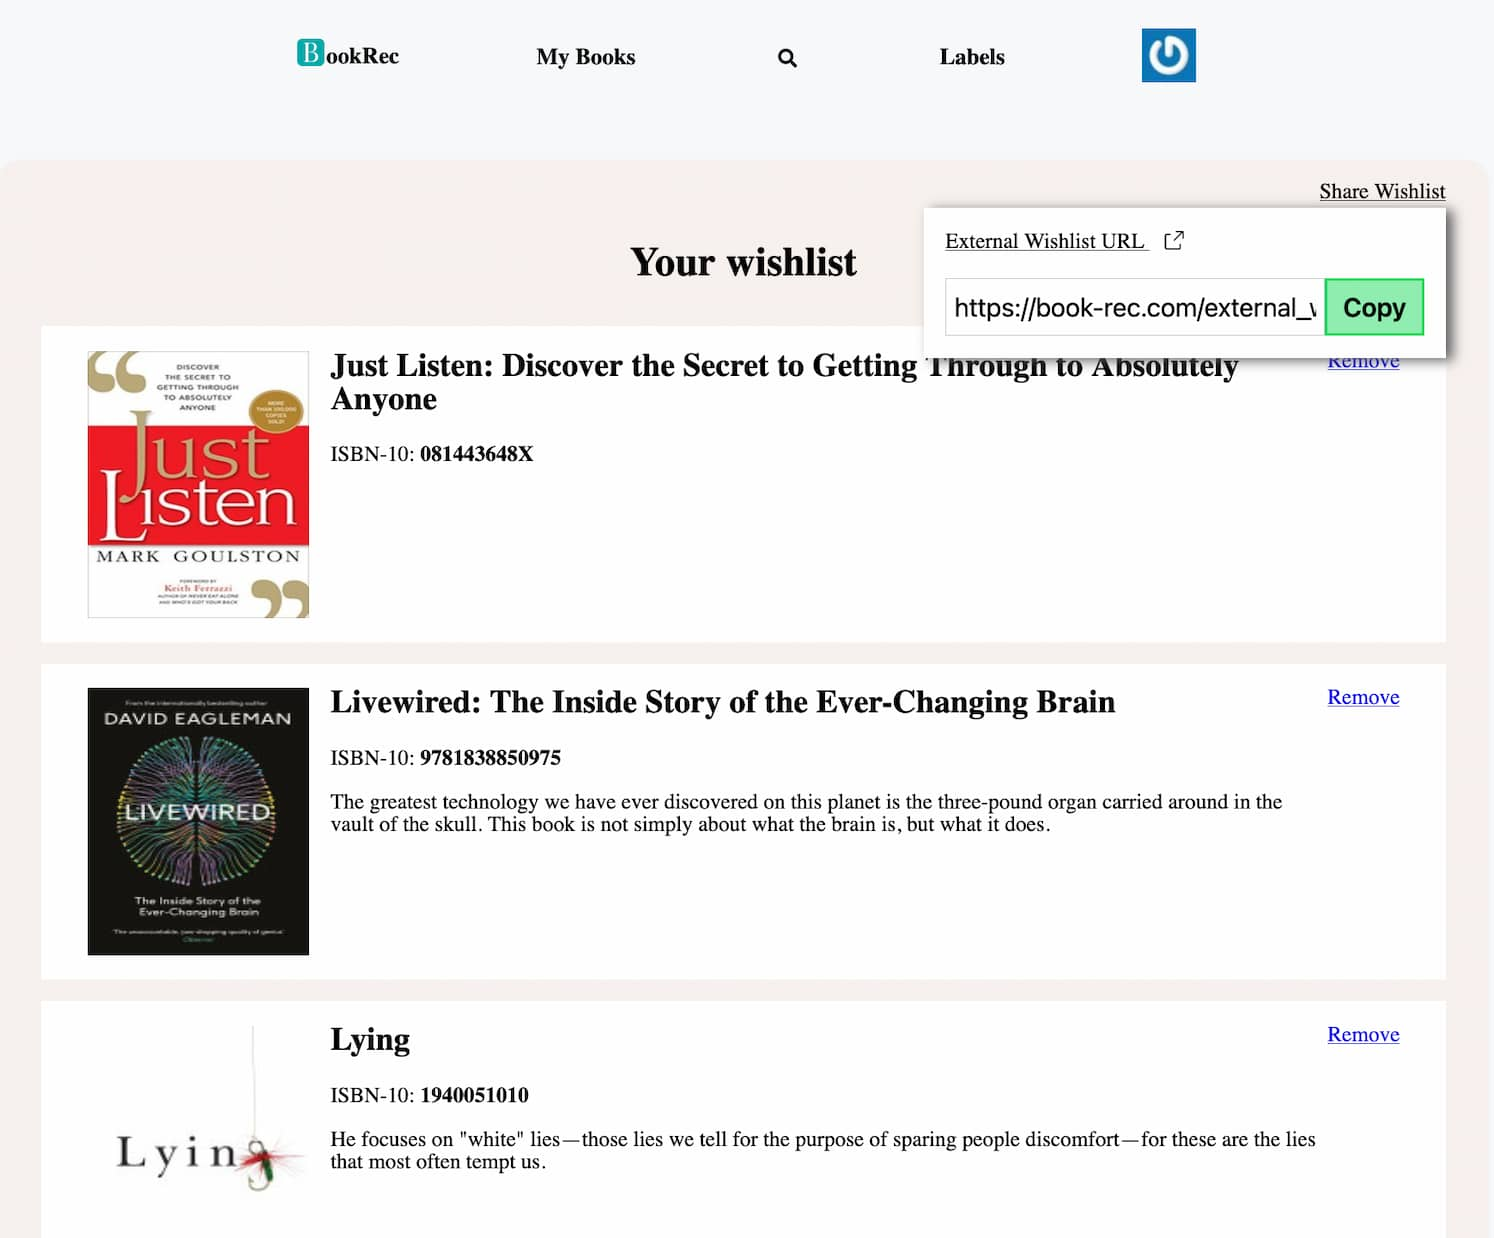 A wishlist withing BookRec